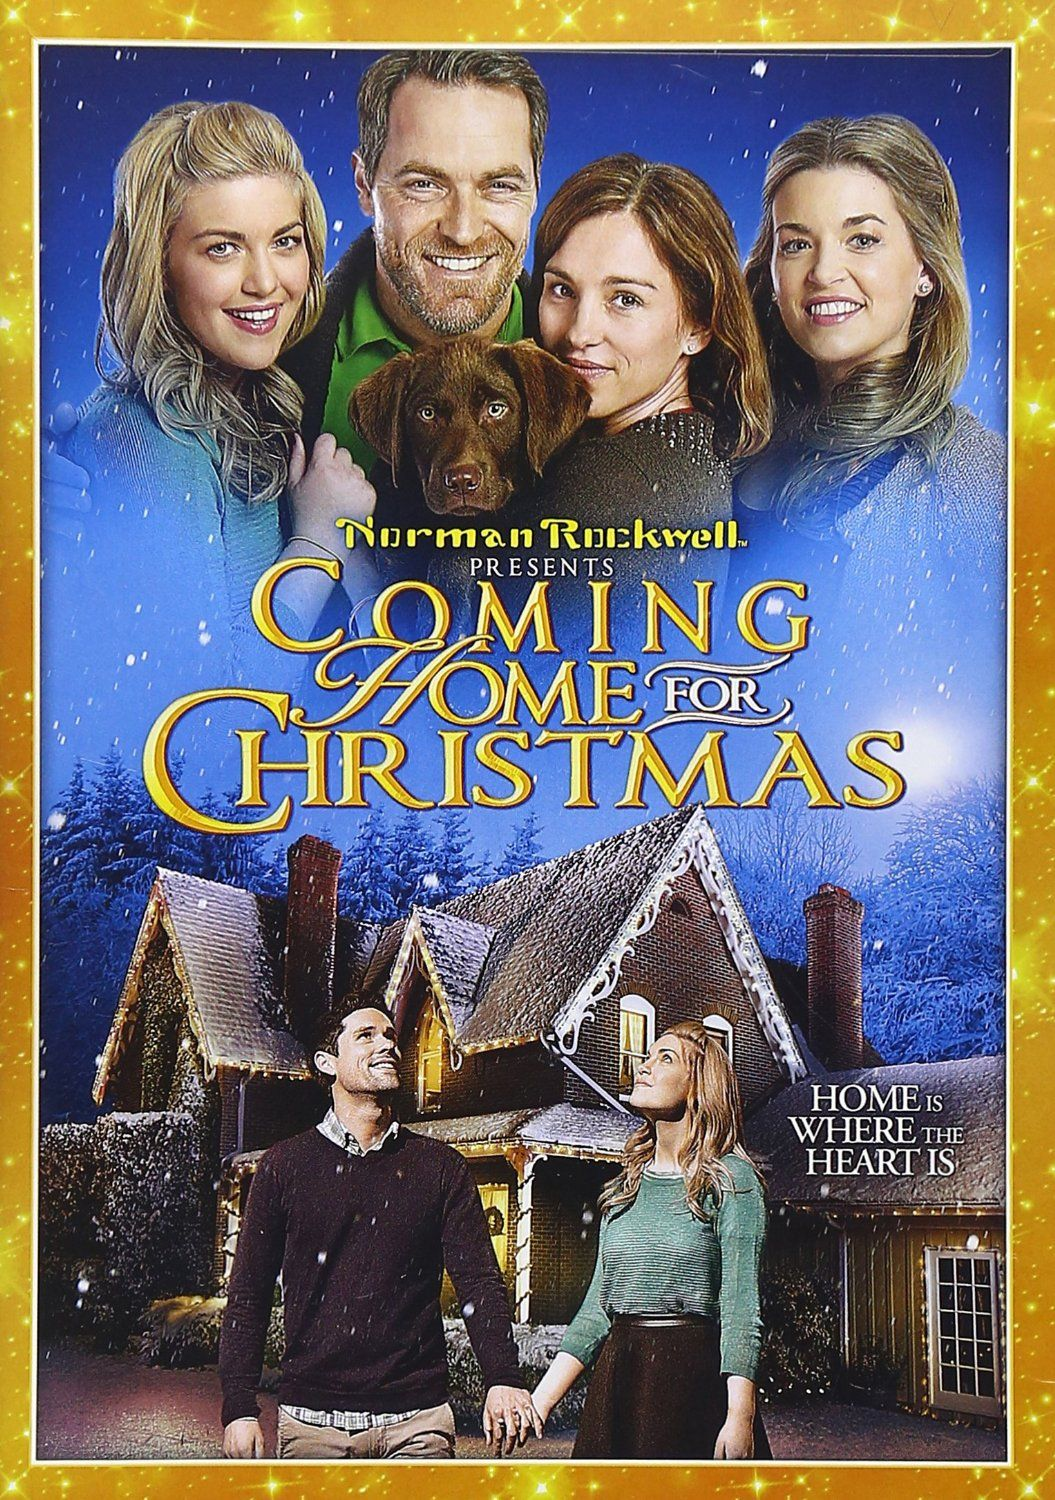 The Top 10 Christmas Movies to Watch on Netflix Top 10